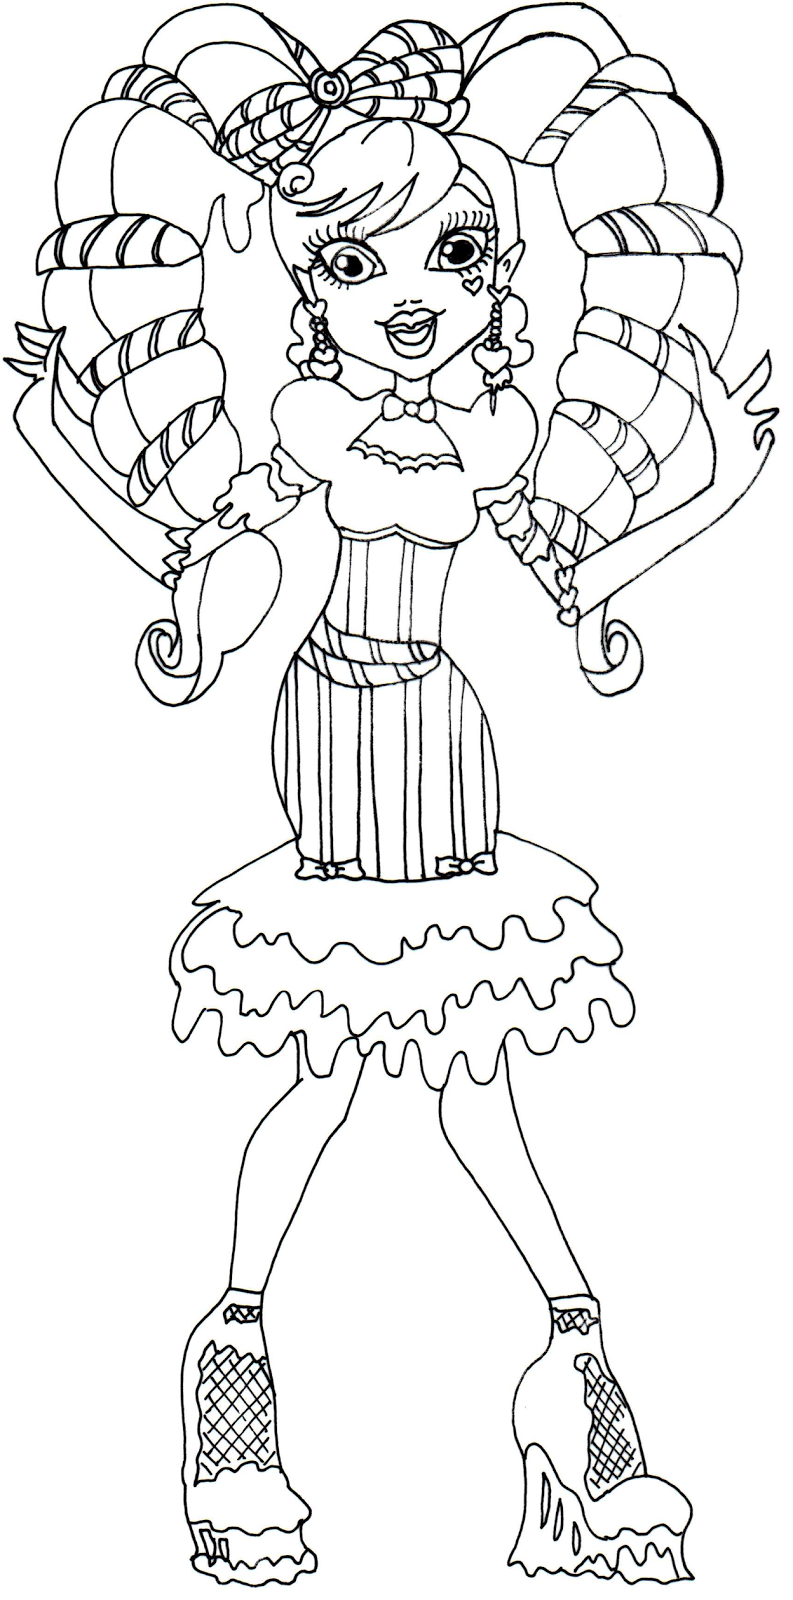 Free Printable Monster High Coloring Pages: Draculaura Sweet Screams ...